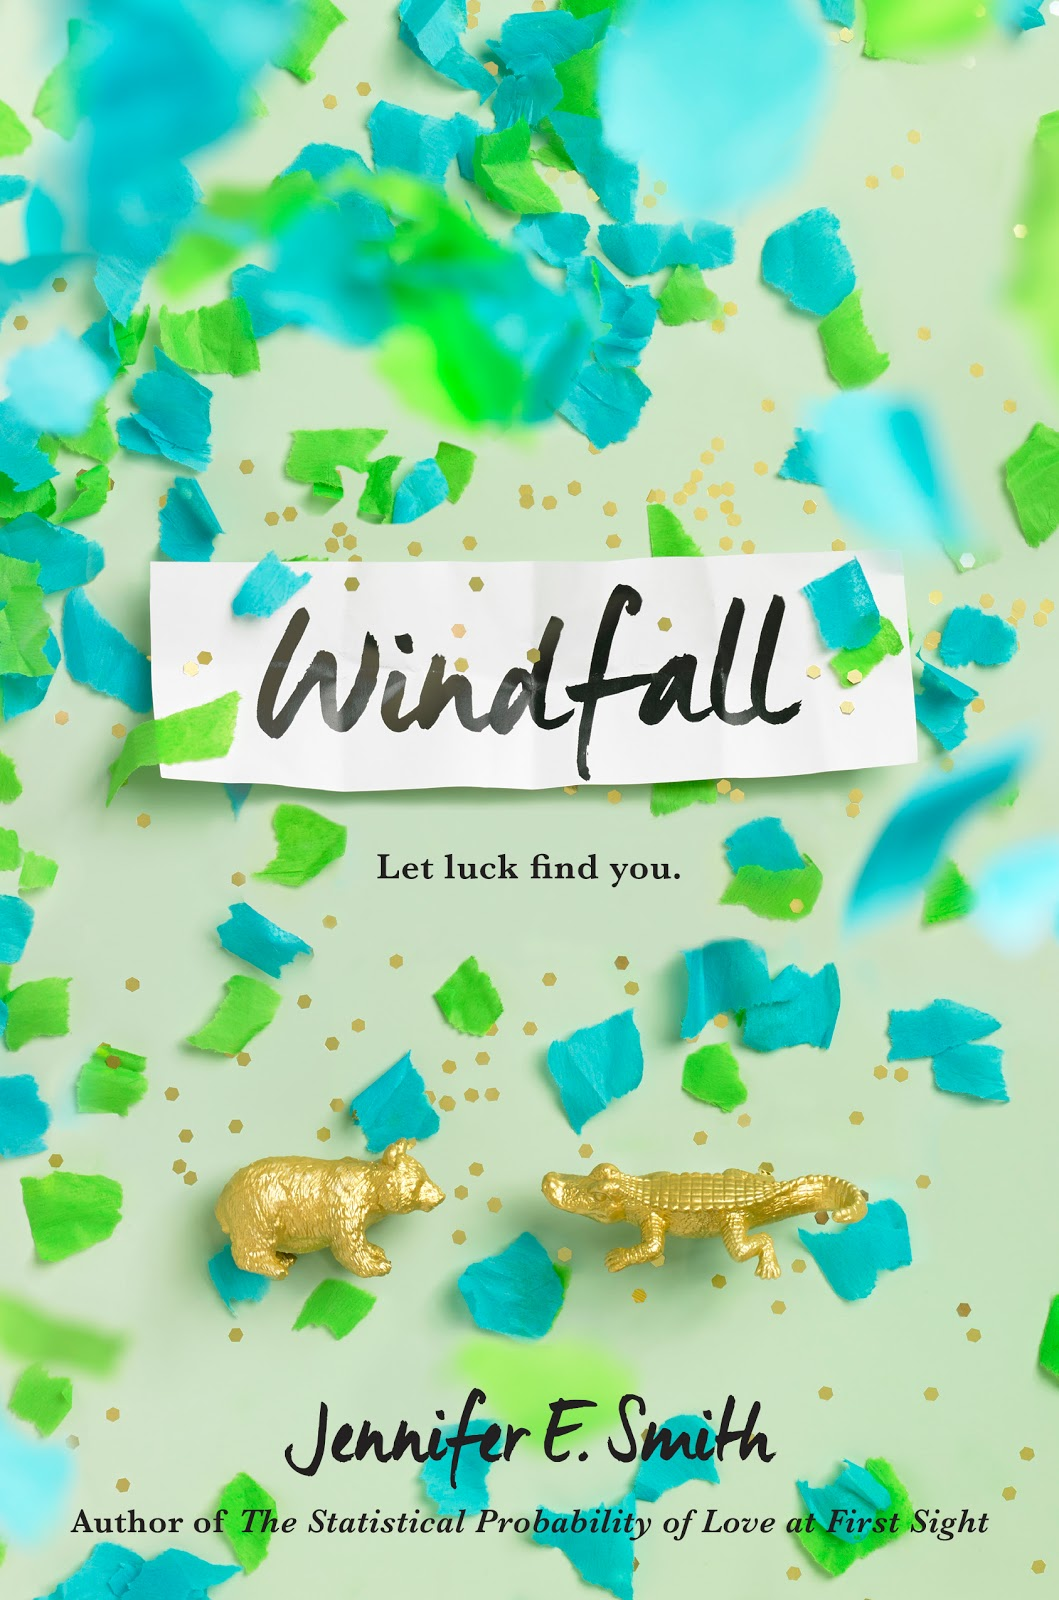 Windfall (Jennifer E. Smith)